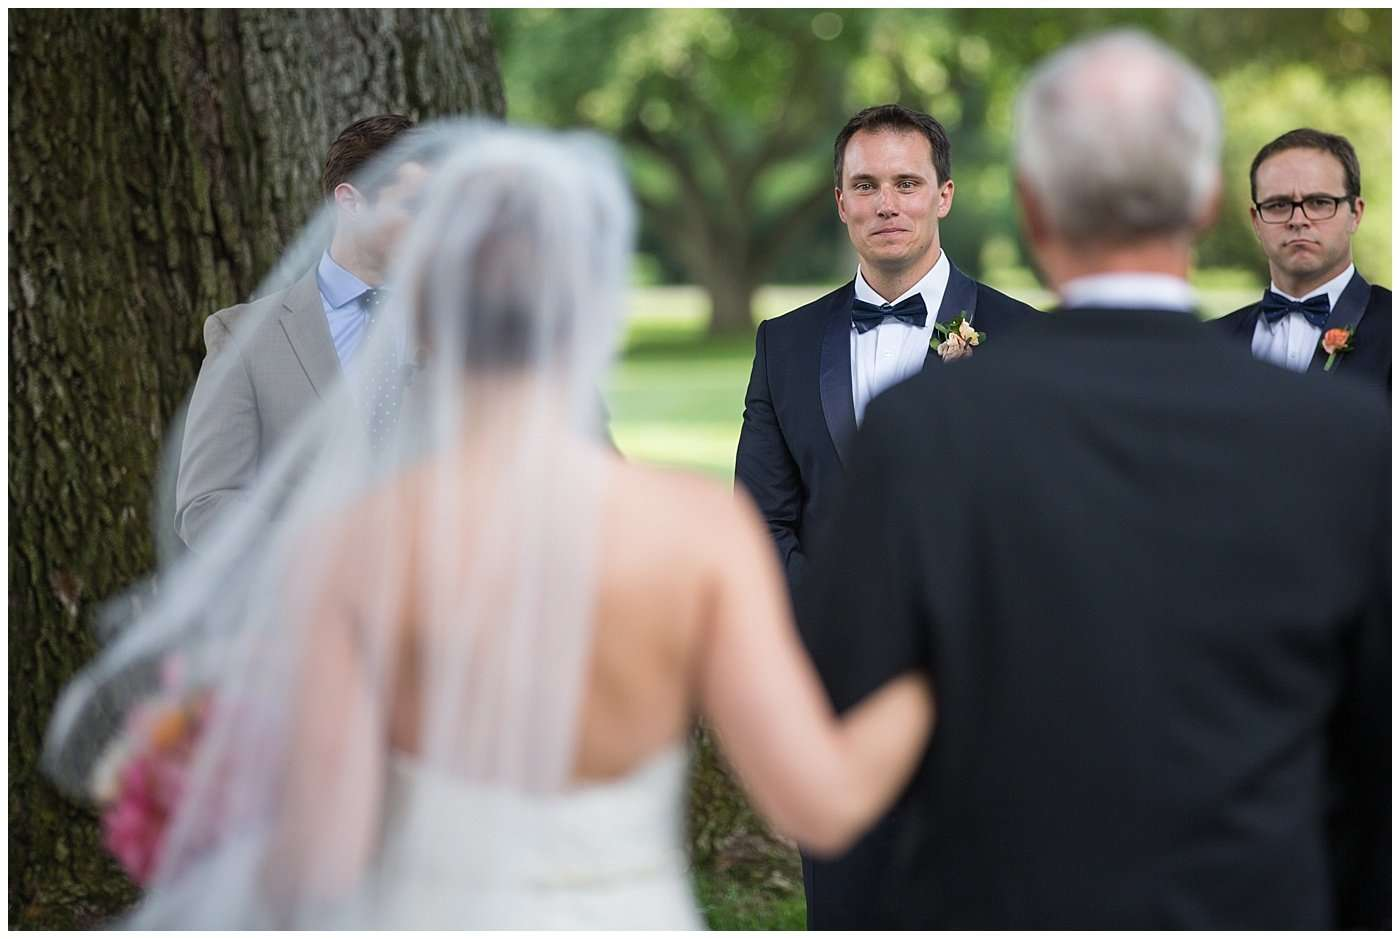 Kim & Lee | A Summer Wedding at Brookside Country Club 108